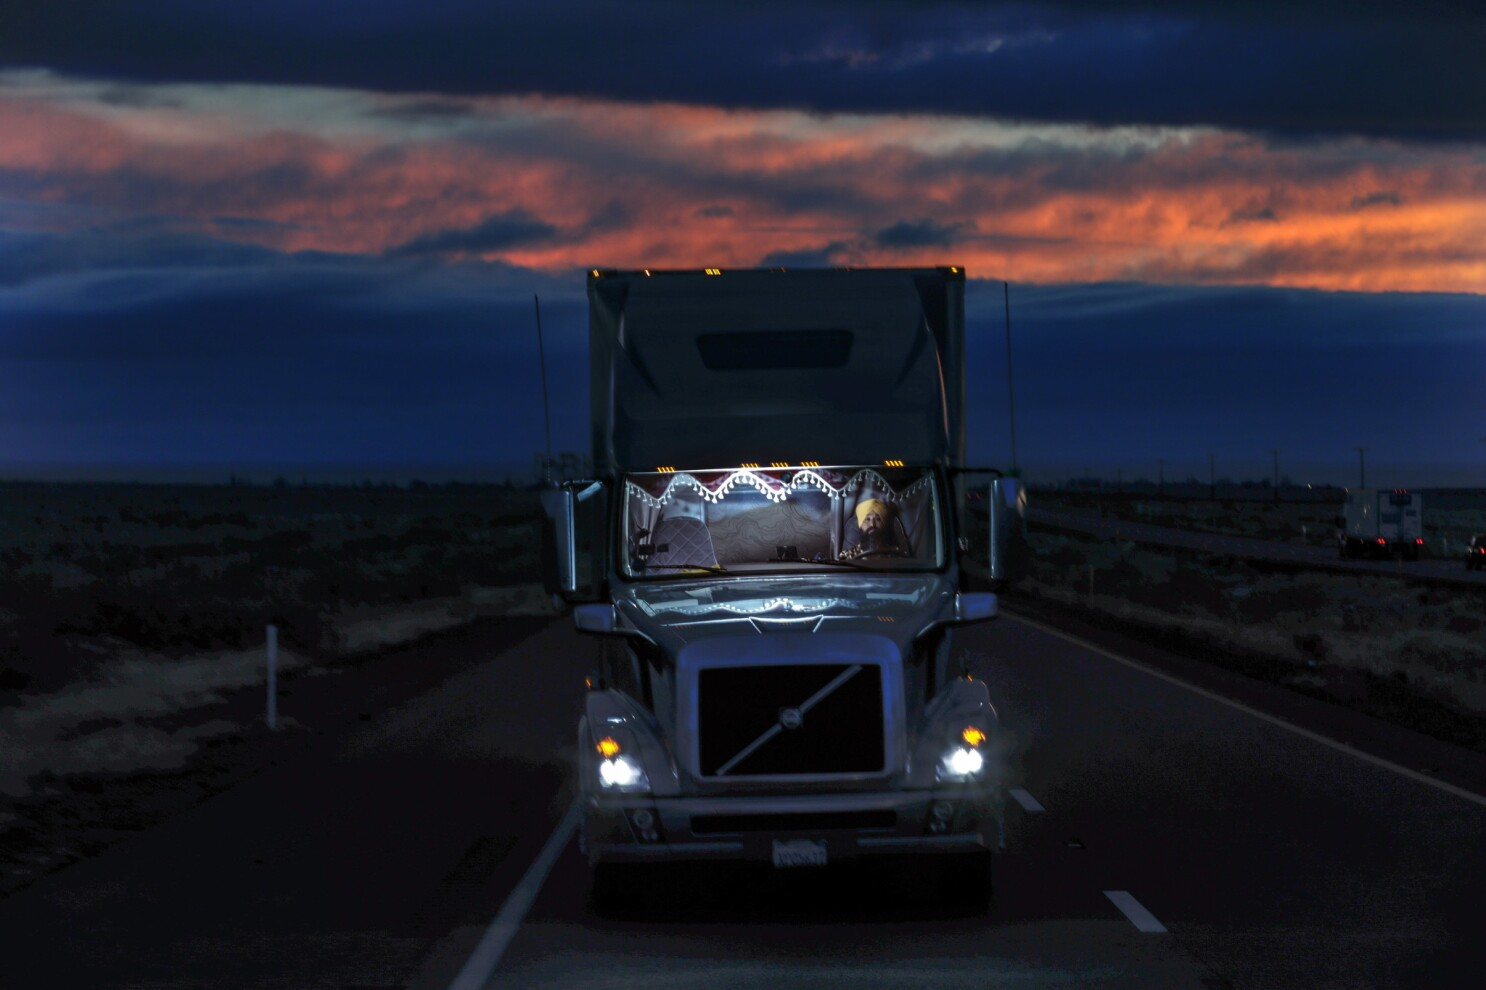 sikh drivers are transforming u.s. trucking. take a ride